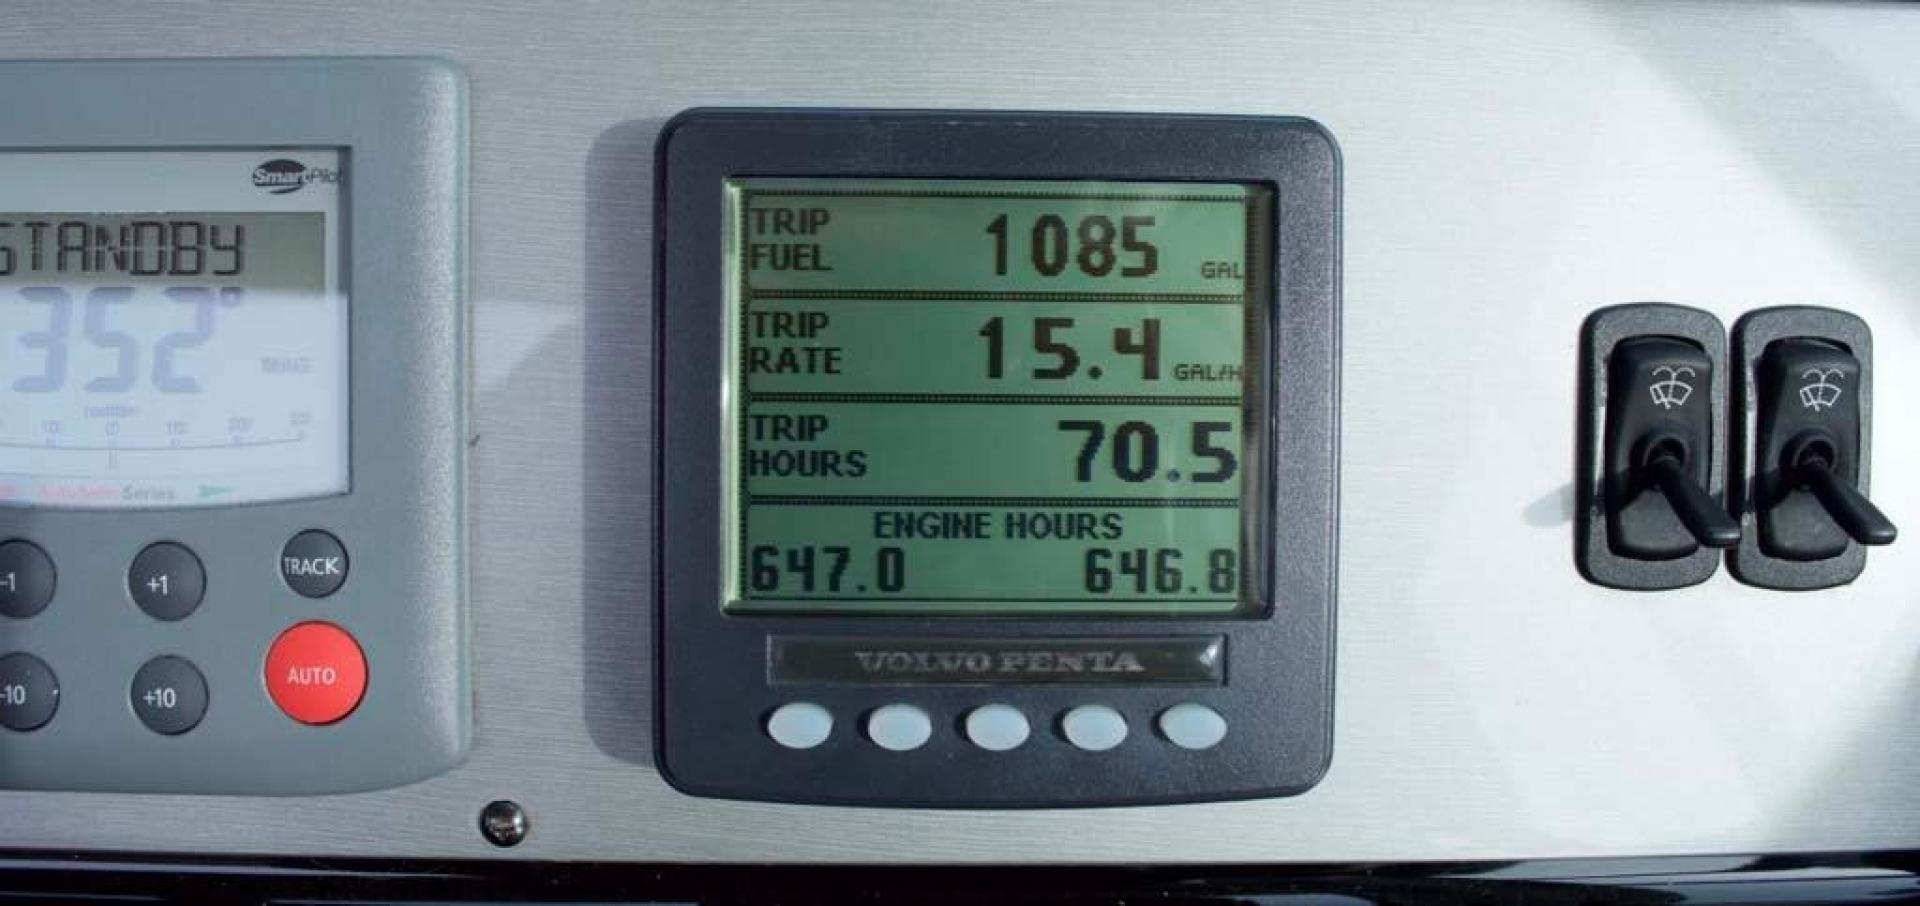 Regal-52-Sport-Coupe-2008-Sea-Ya-Windever-Long-Island-New-York-United-States-Engine-Hour-Meter-930144